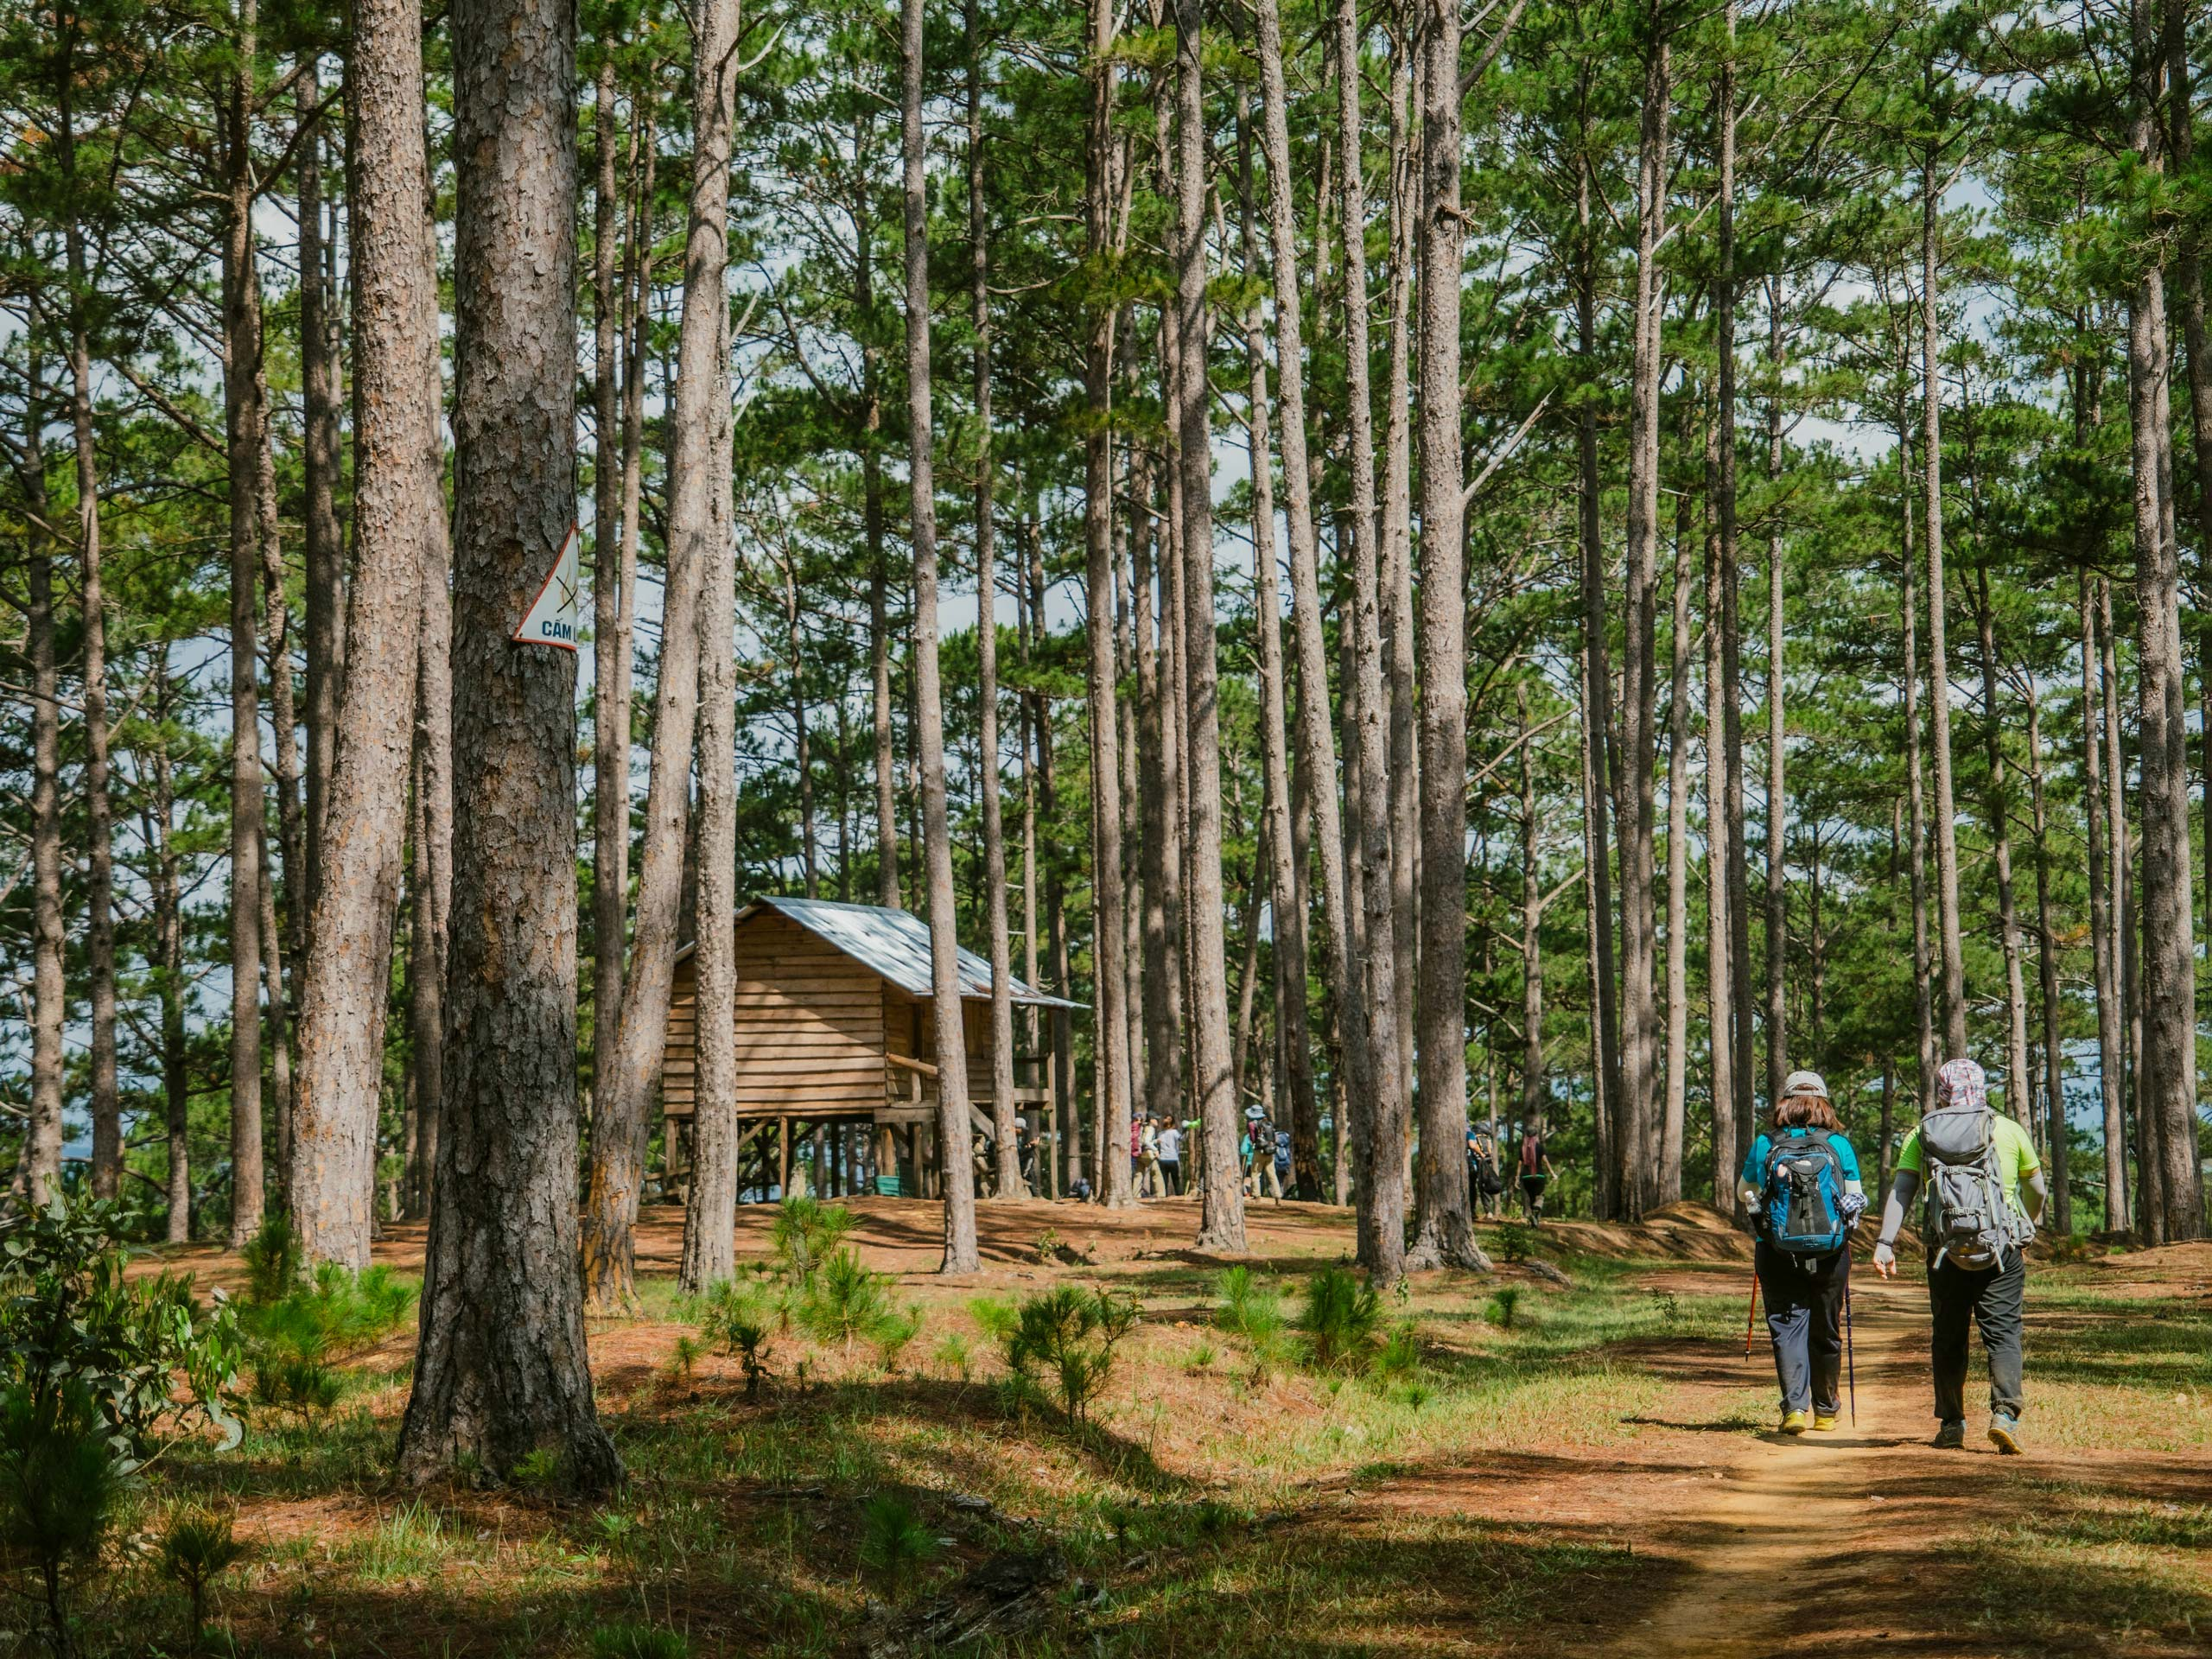 Couple with backpacks walking through the forest toward cabin